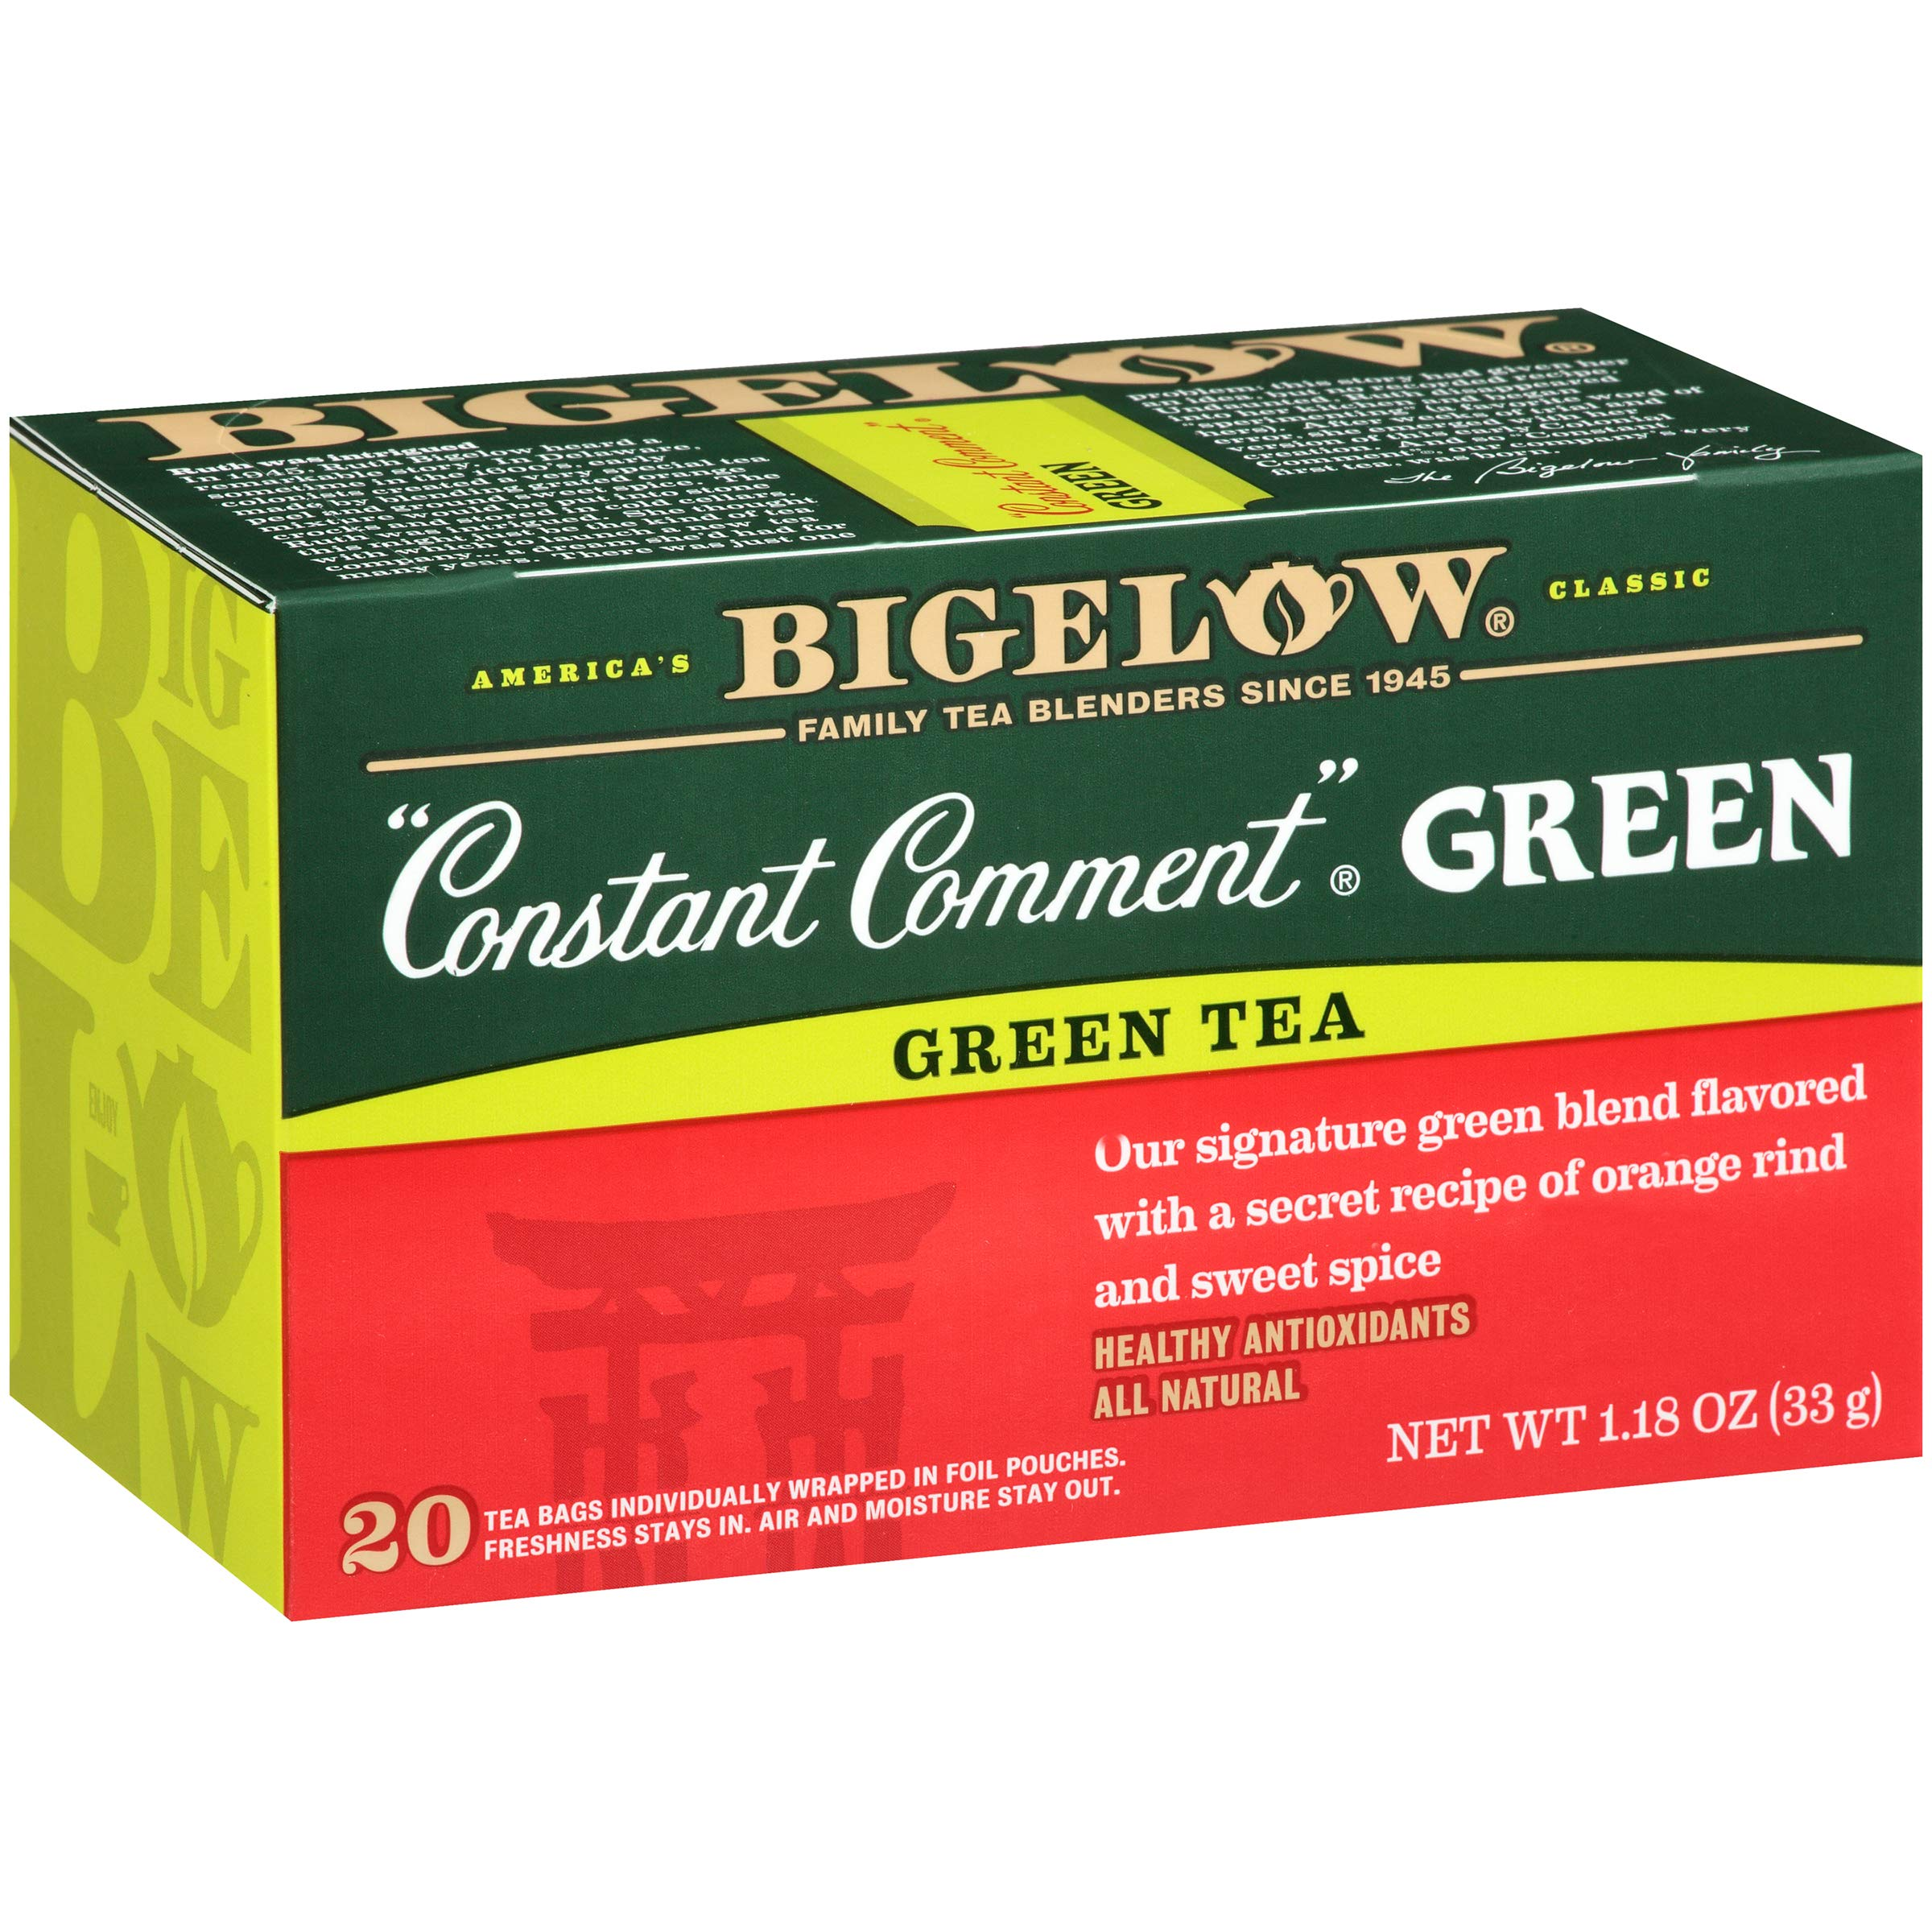 Bigelow Constant Comment Green Tea 20-Count Boxes 1.18Oz (Pack of 6), 120 Tea Bags Total.  Caffeinated Individual Black Tea Bags, for Hot Tea or Iced Tea, Drink Plain or Sweetened with Honey or Sugar by Bigelow